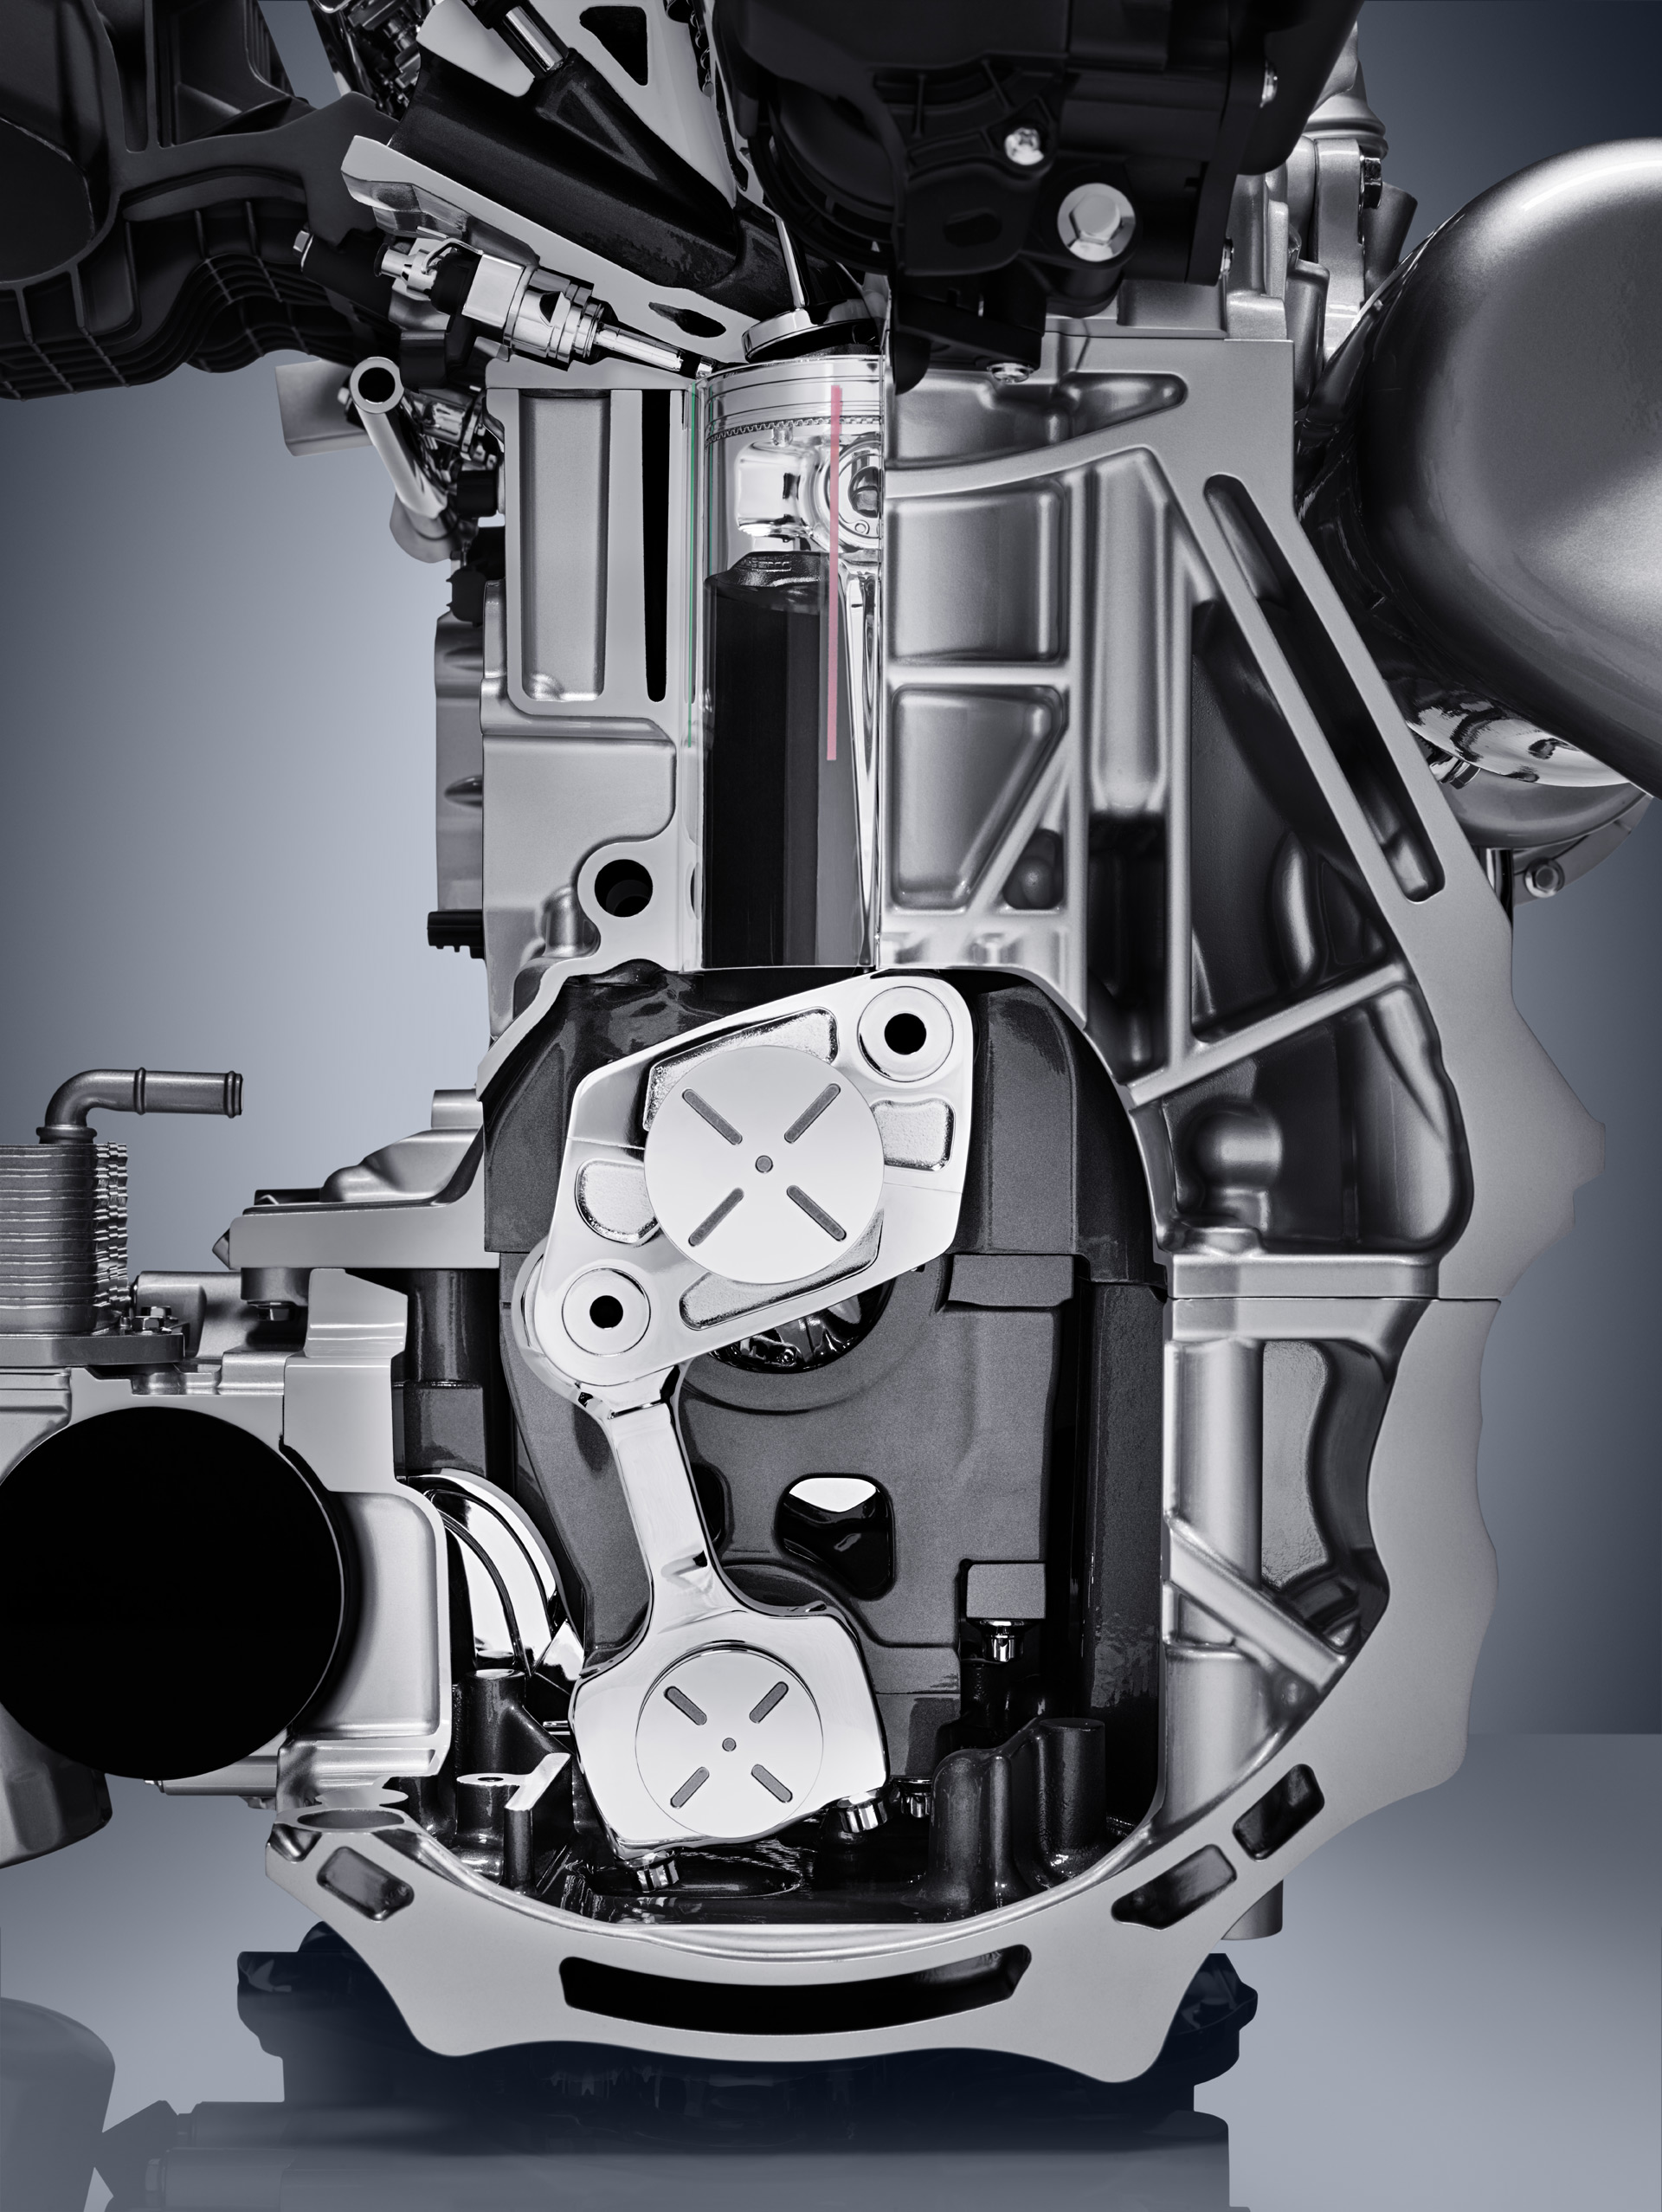 a close look at infiniti's vc-turbo variable compression engine